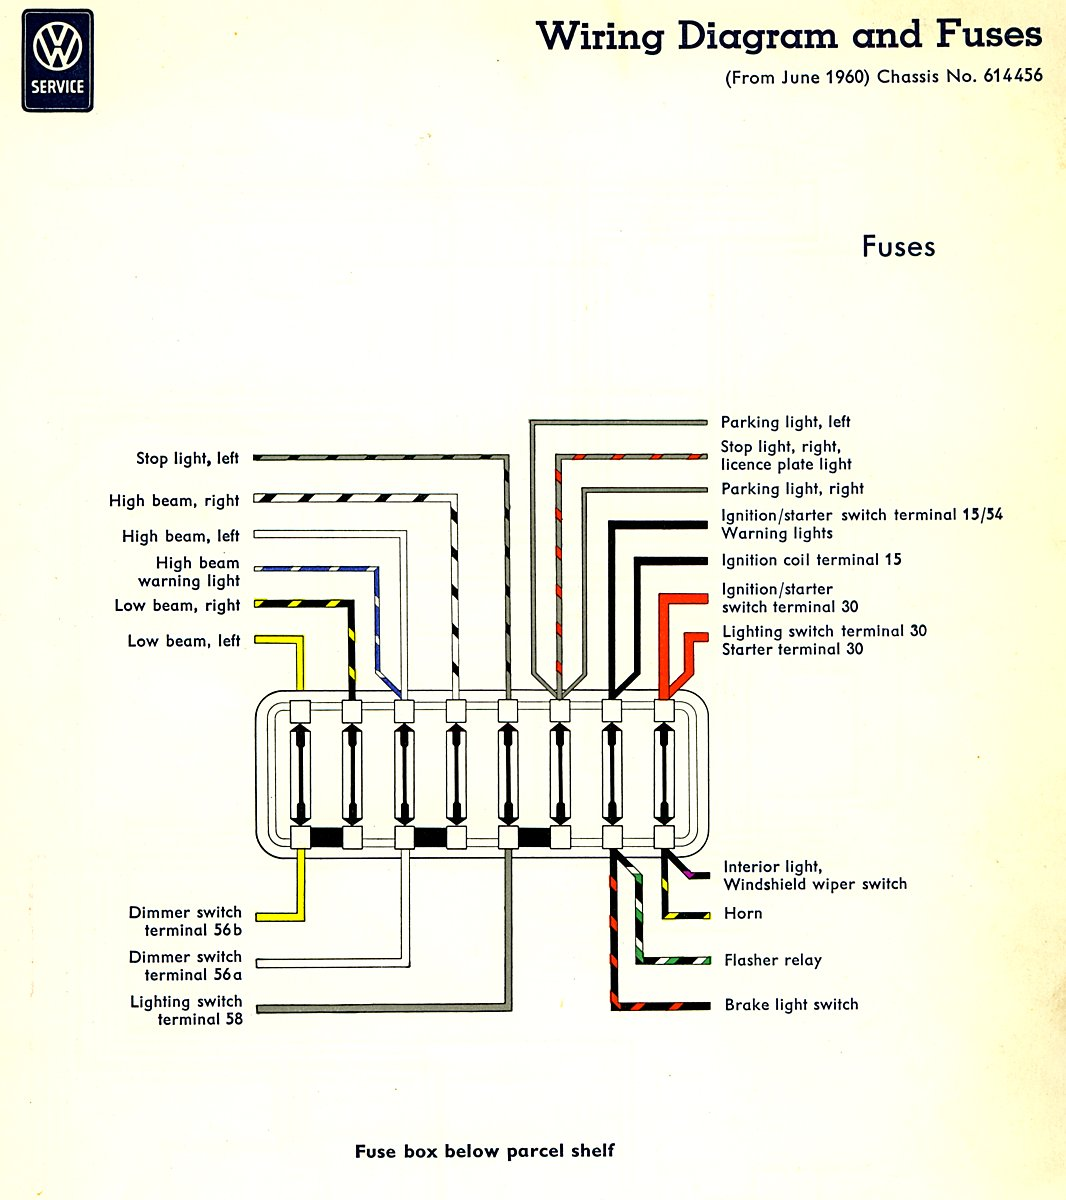 hight resolution of 1981 vanagon fuse box diagram wiring diagrams scematic vanagon starter relay fuse 1981 vanagon fuse box diagram